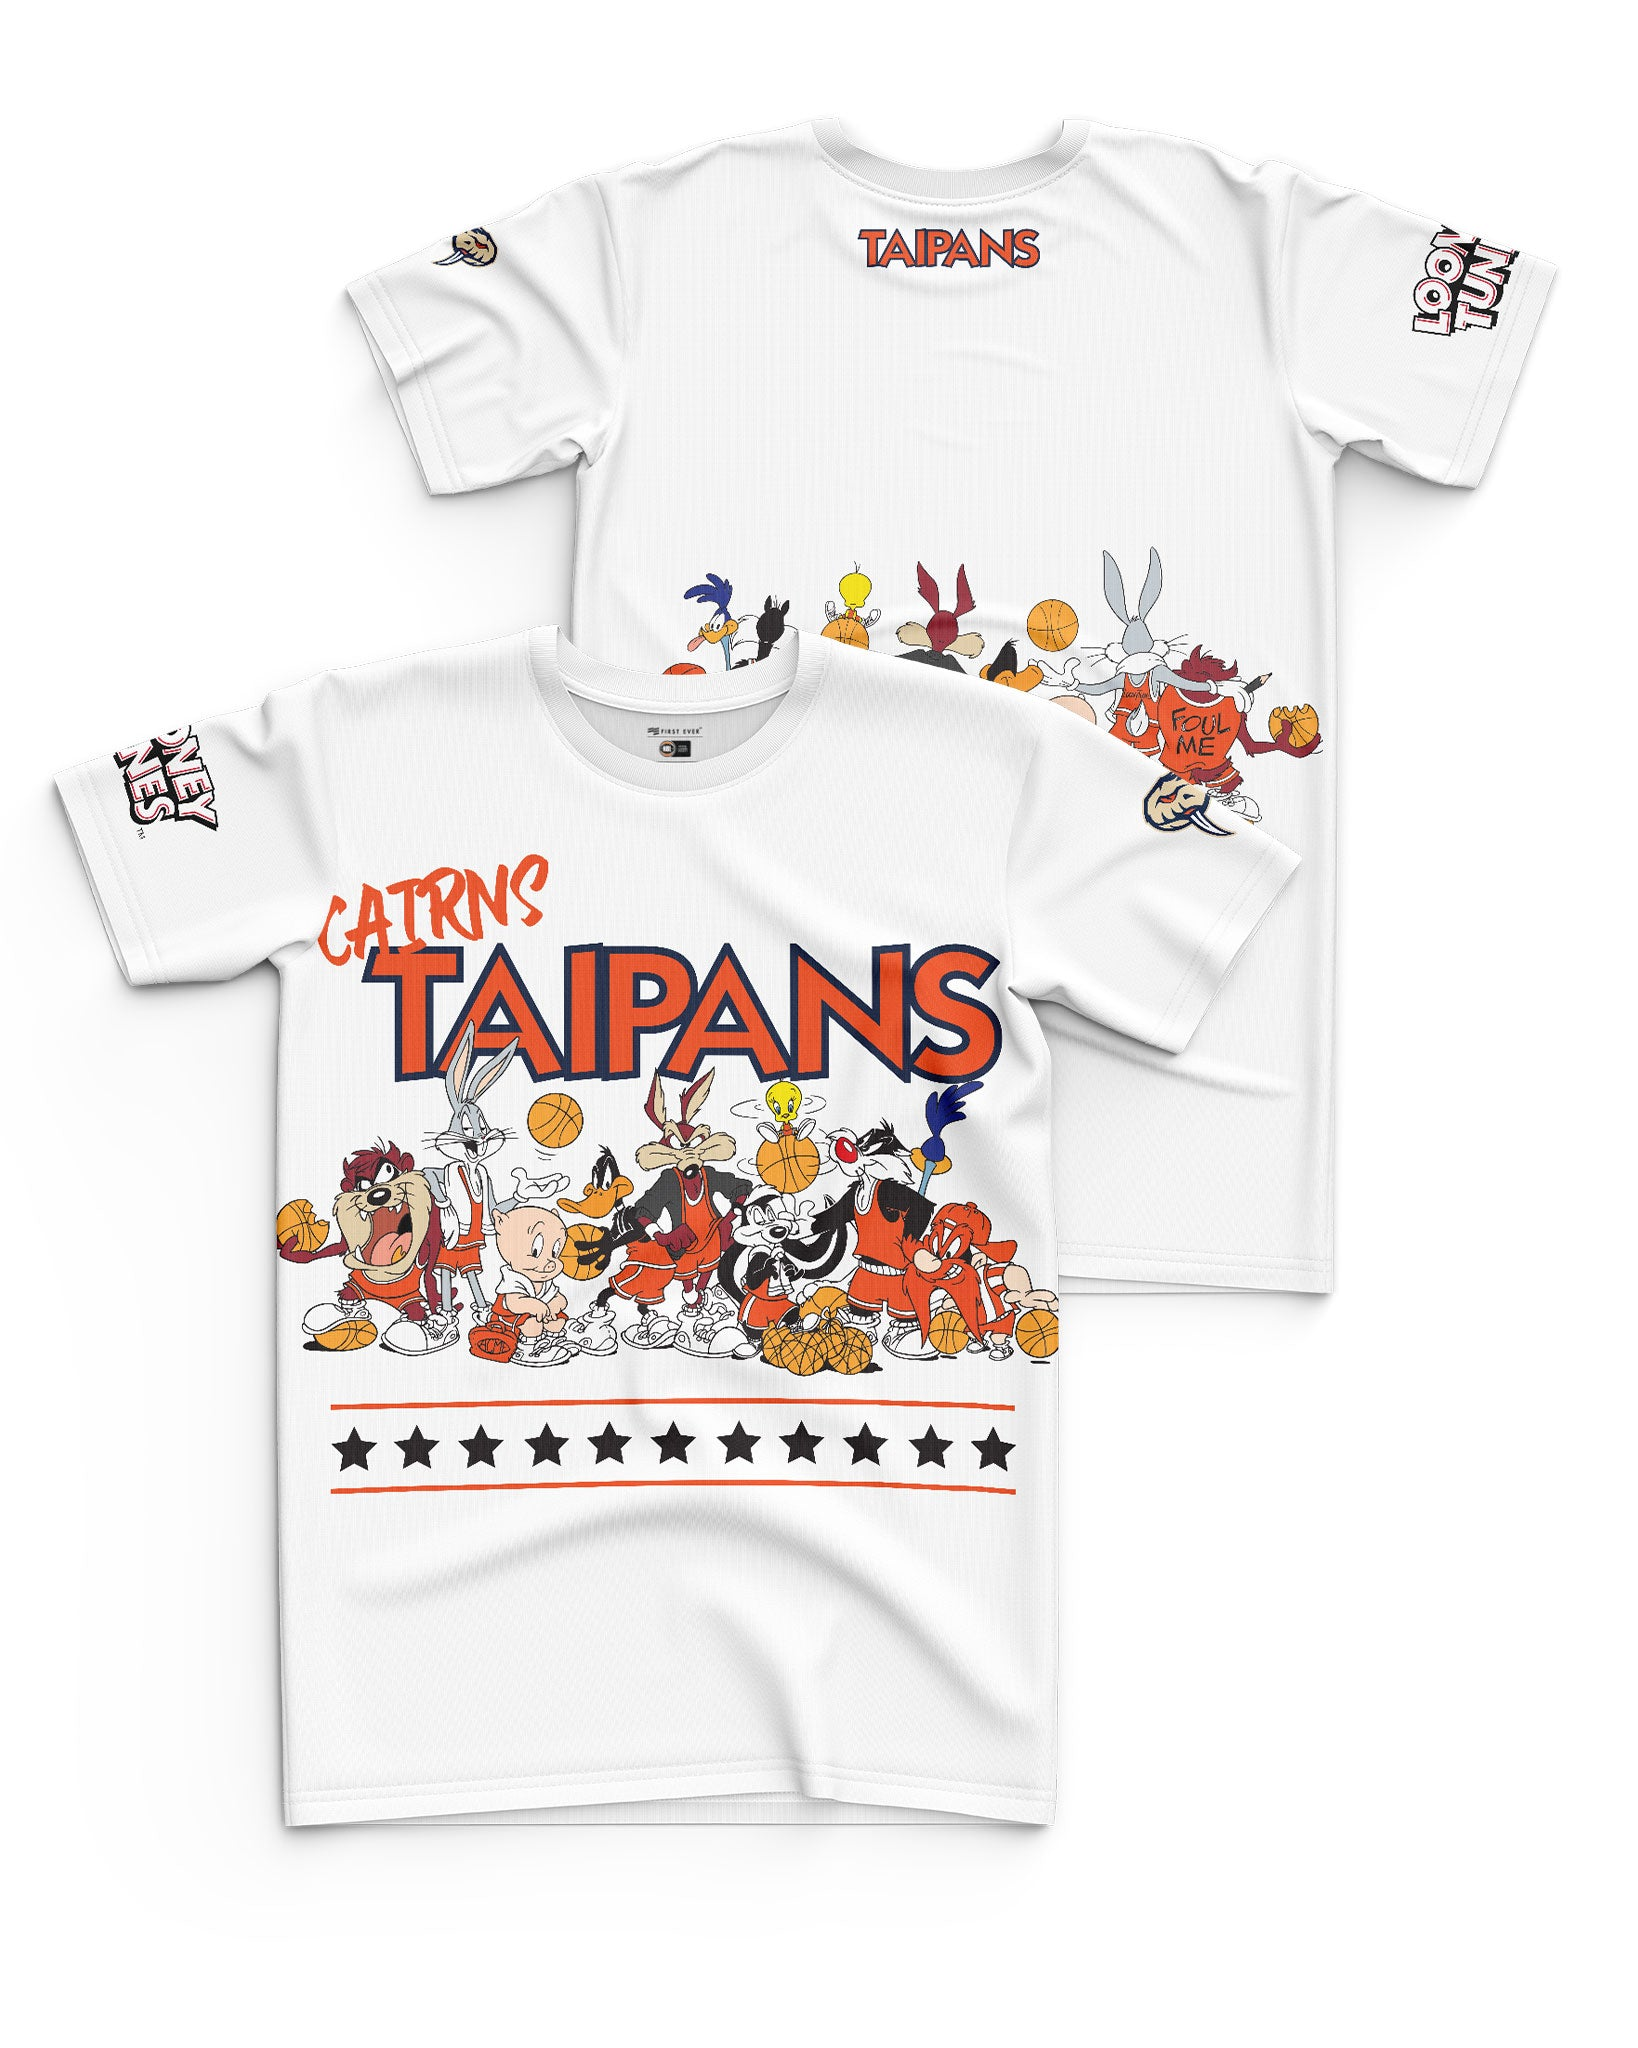 Cairns Taipans 20/21 Looney Tunes Youth Squad Tee